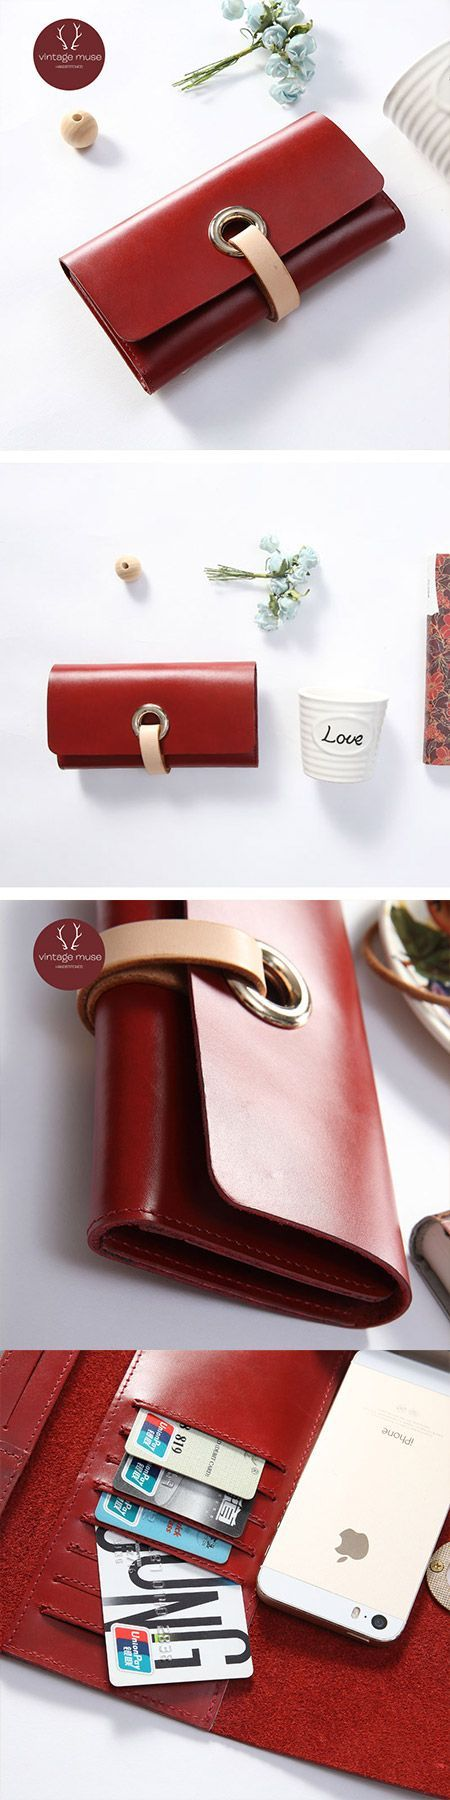 Handmade leather vintage women long wallet clutch purse wallet - buy ladies purse online, cheap handbags uk, designer handbags uk *sponsored https://www.pinterest.com/purses_handbags/ https://www.pinterest.com/explore/purse/ https://www.pinterest.com/purses_handbags/leather-purses/ https://www.stylewe.com/category/handbags-237